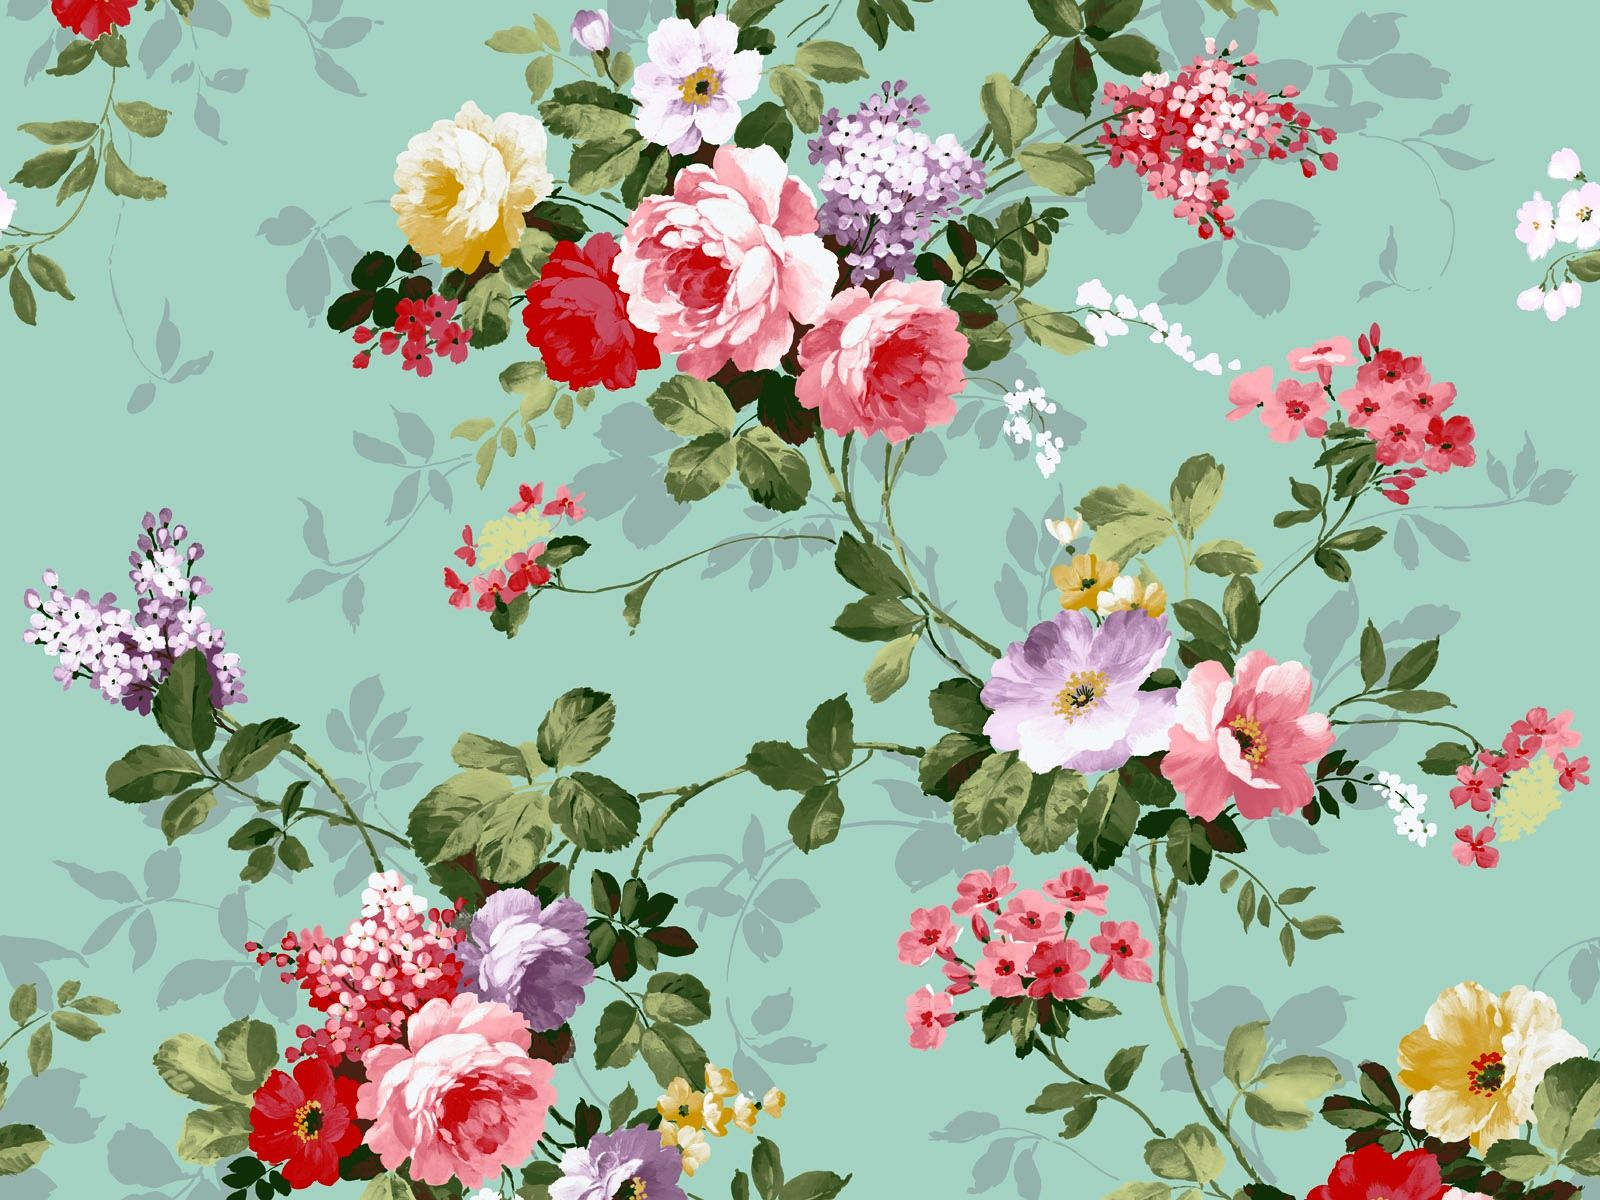 Floral Background Tumblr Wallpaper High Quality With Images